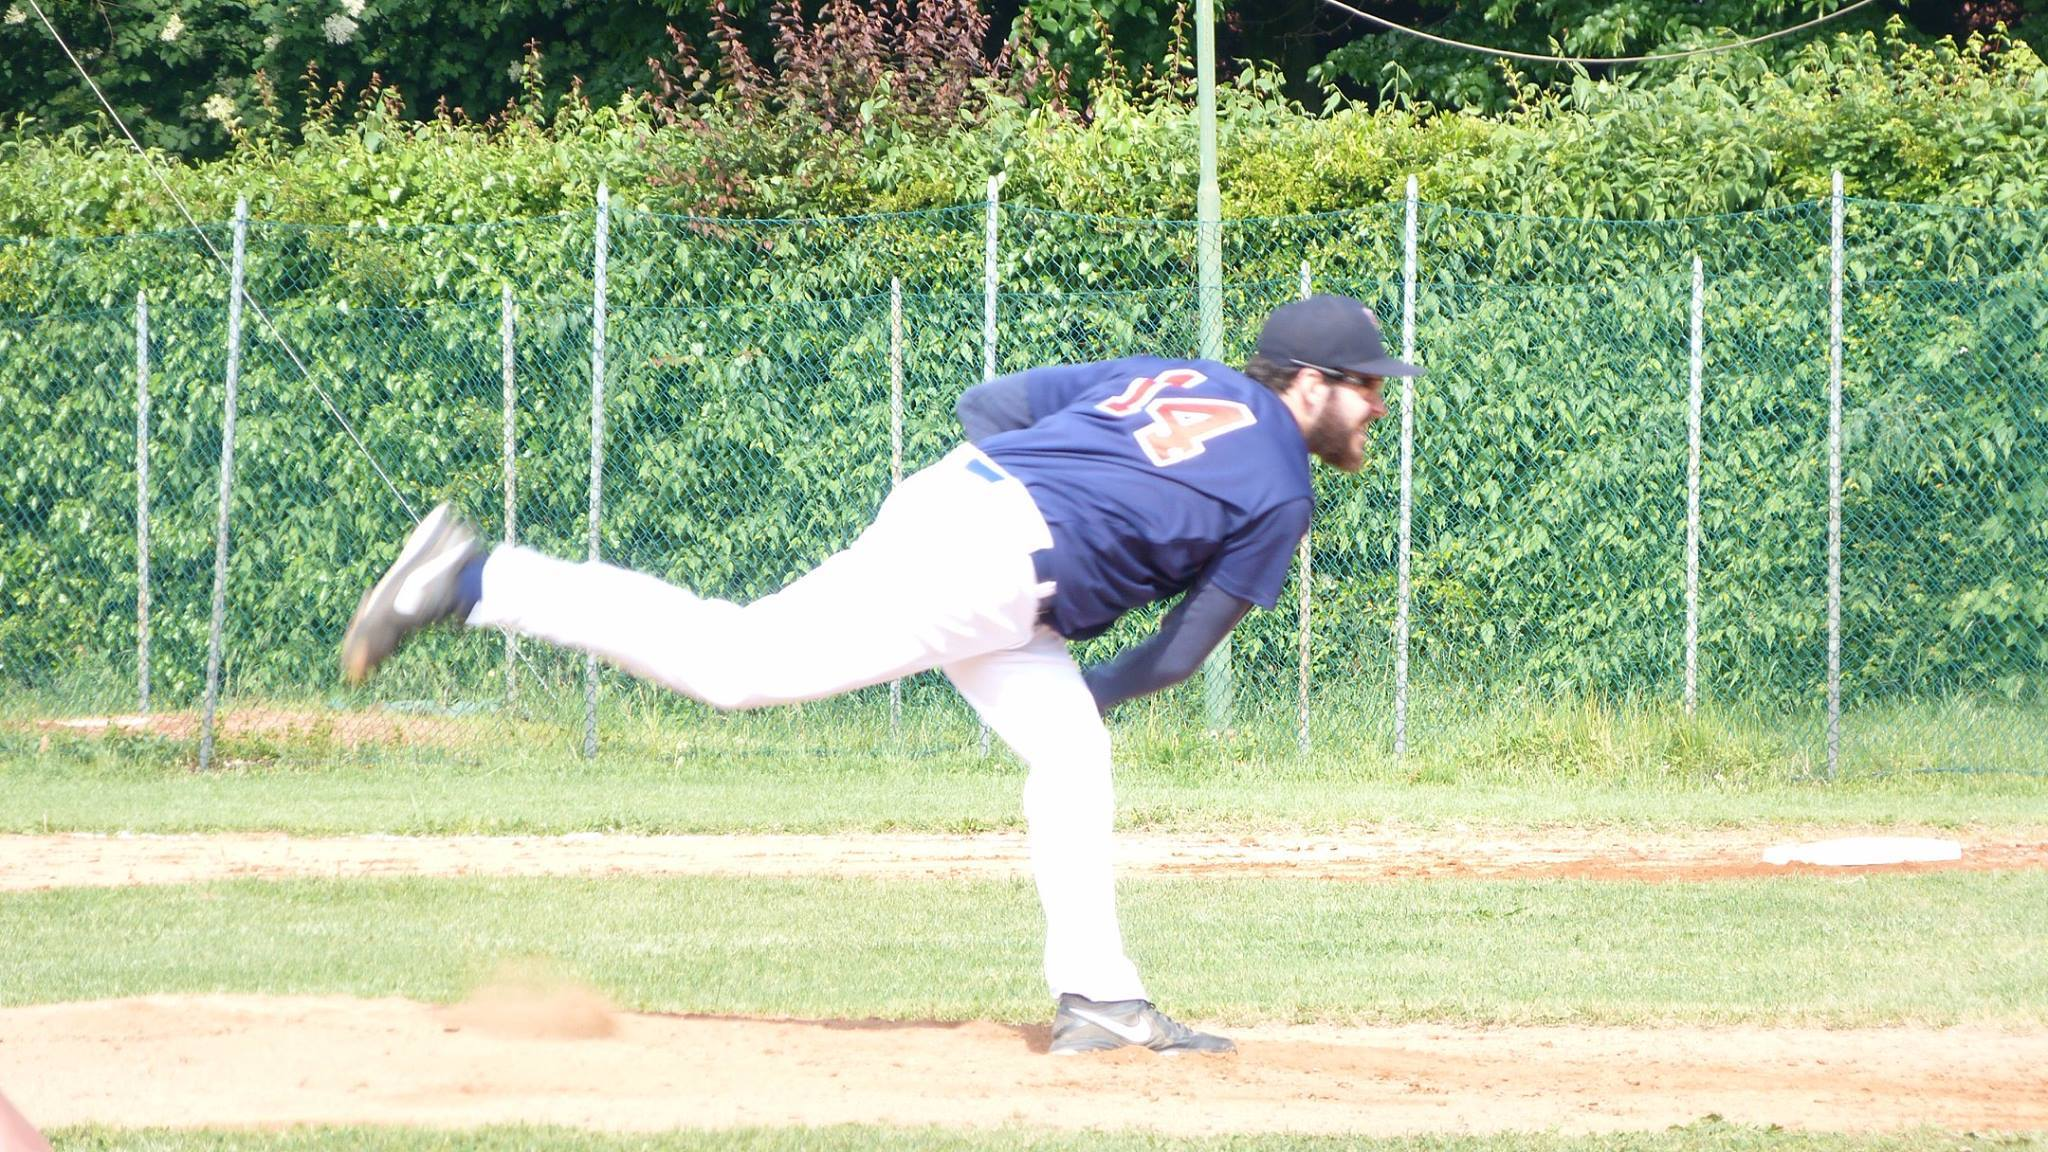 Bologna Athletics – Verona 3-10, 4-3 (10°)